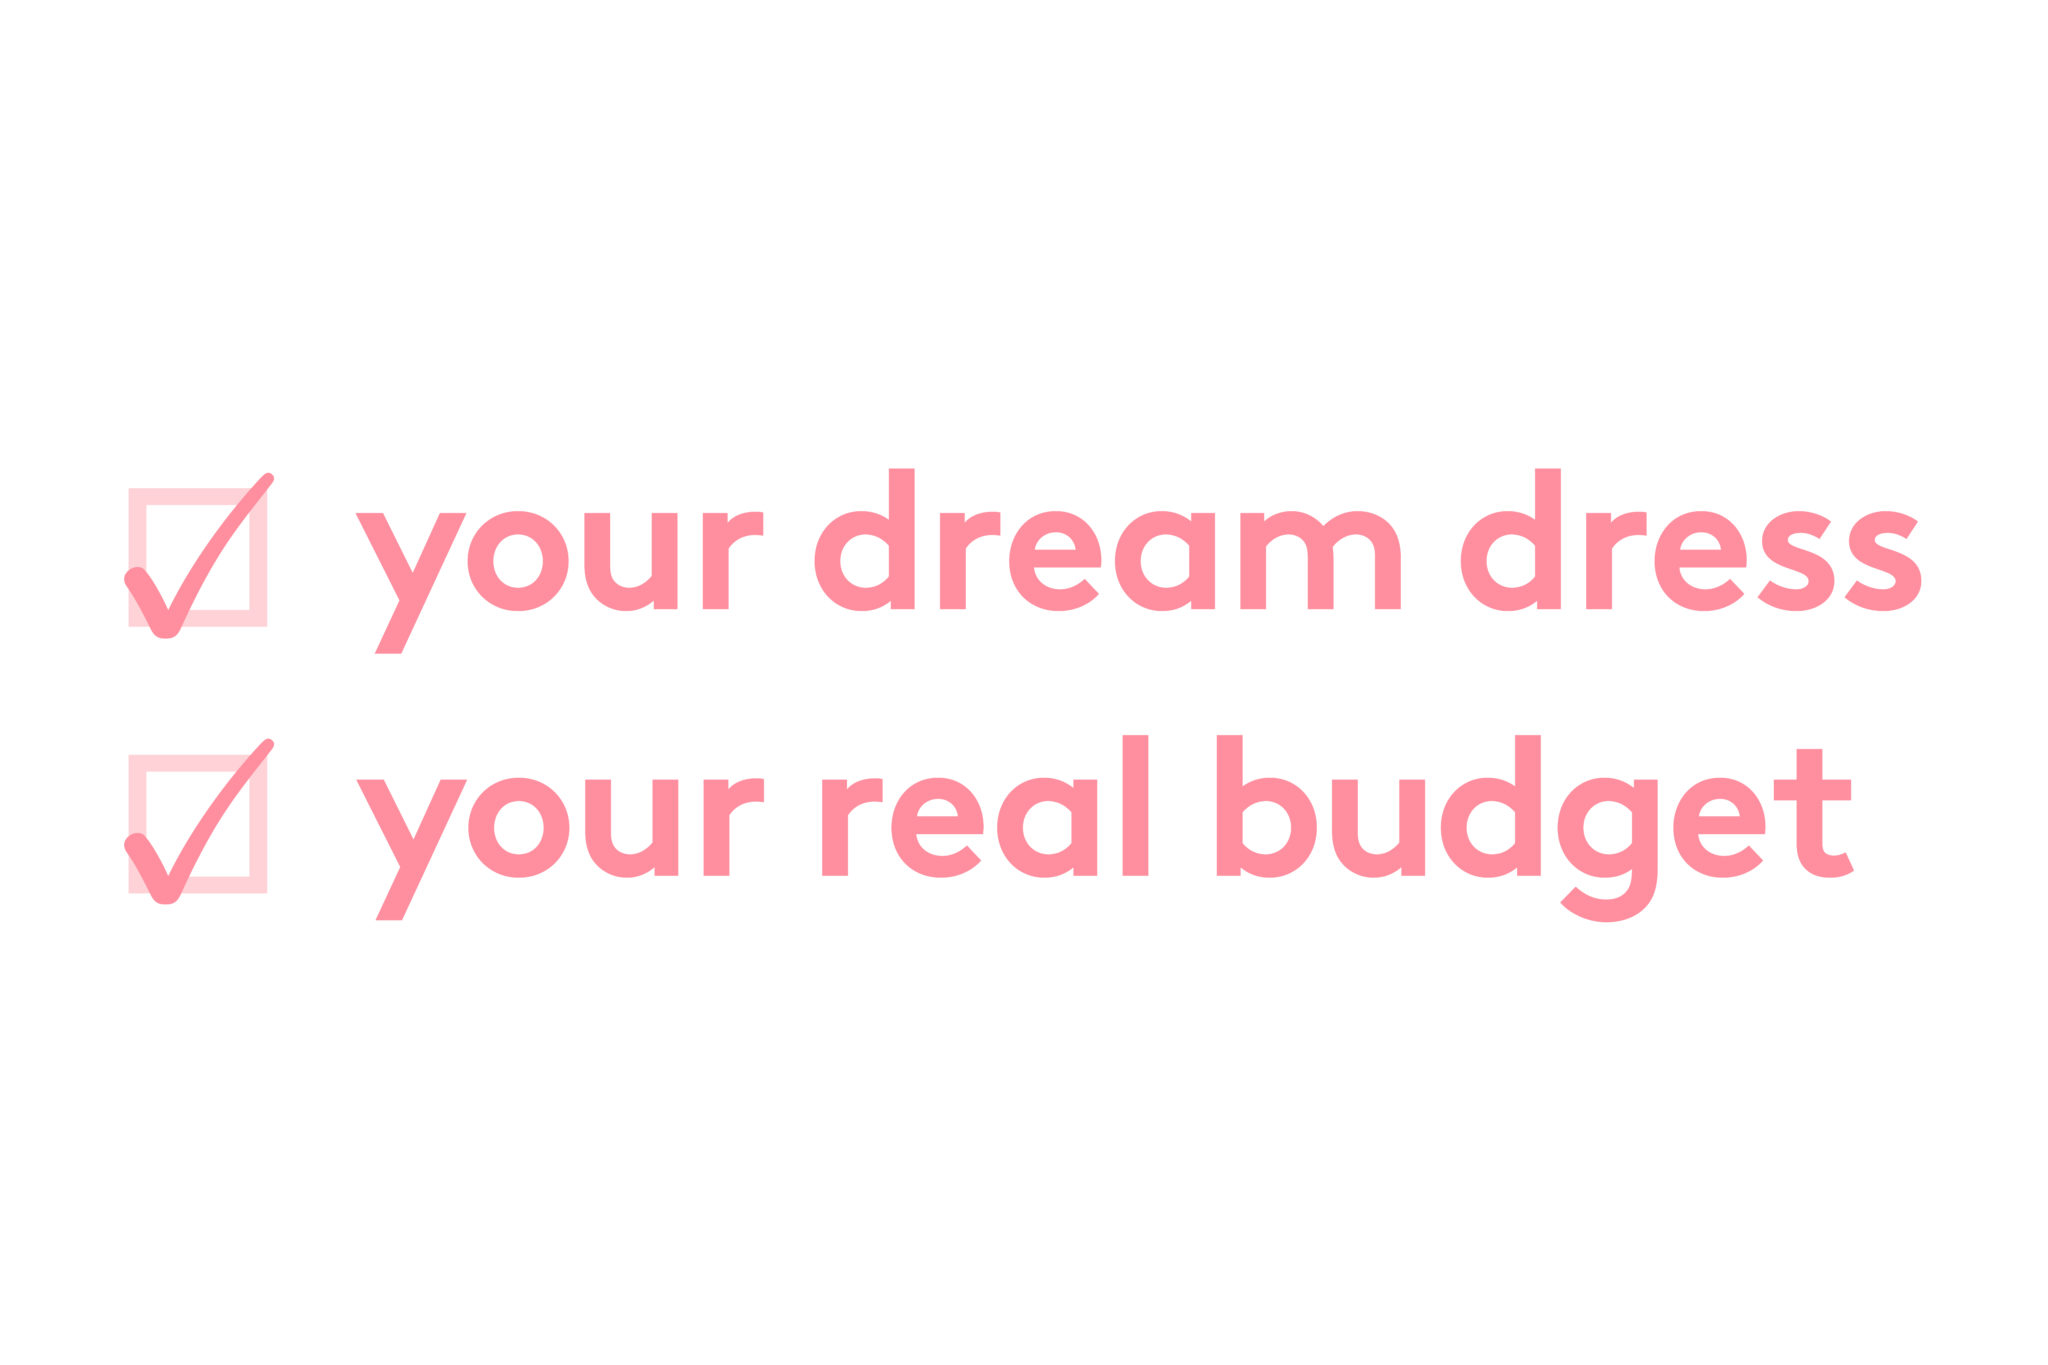 your dream dress, your real budget